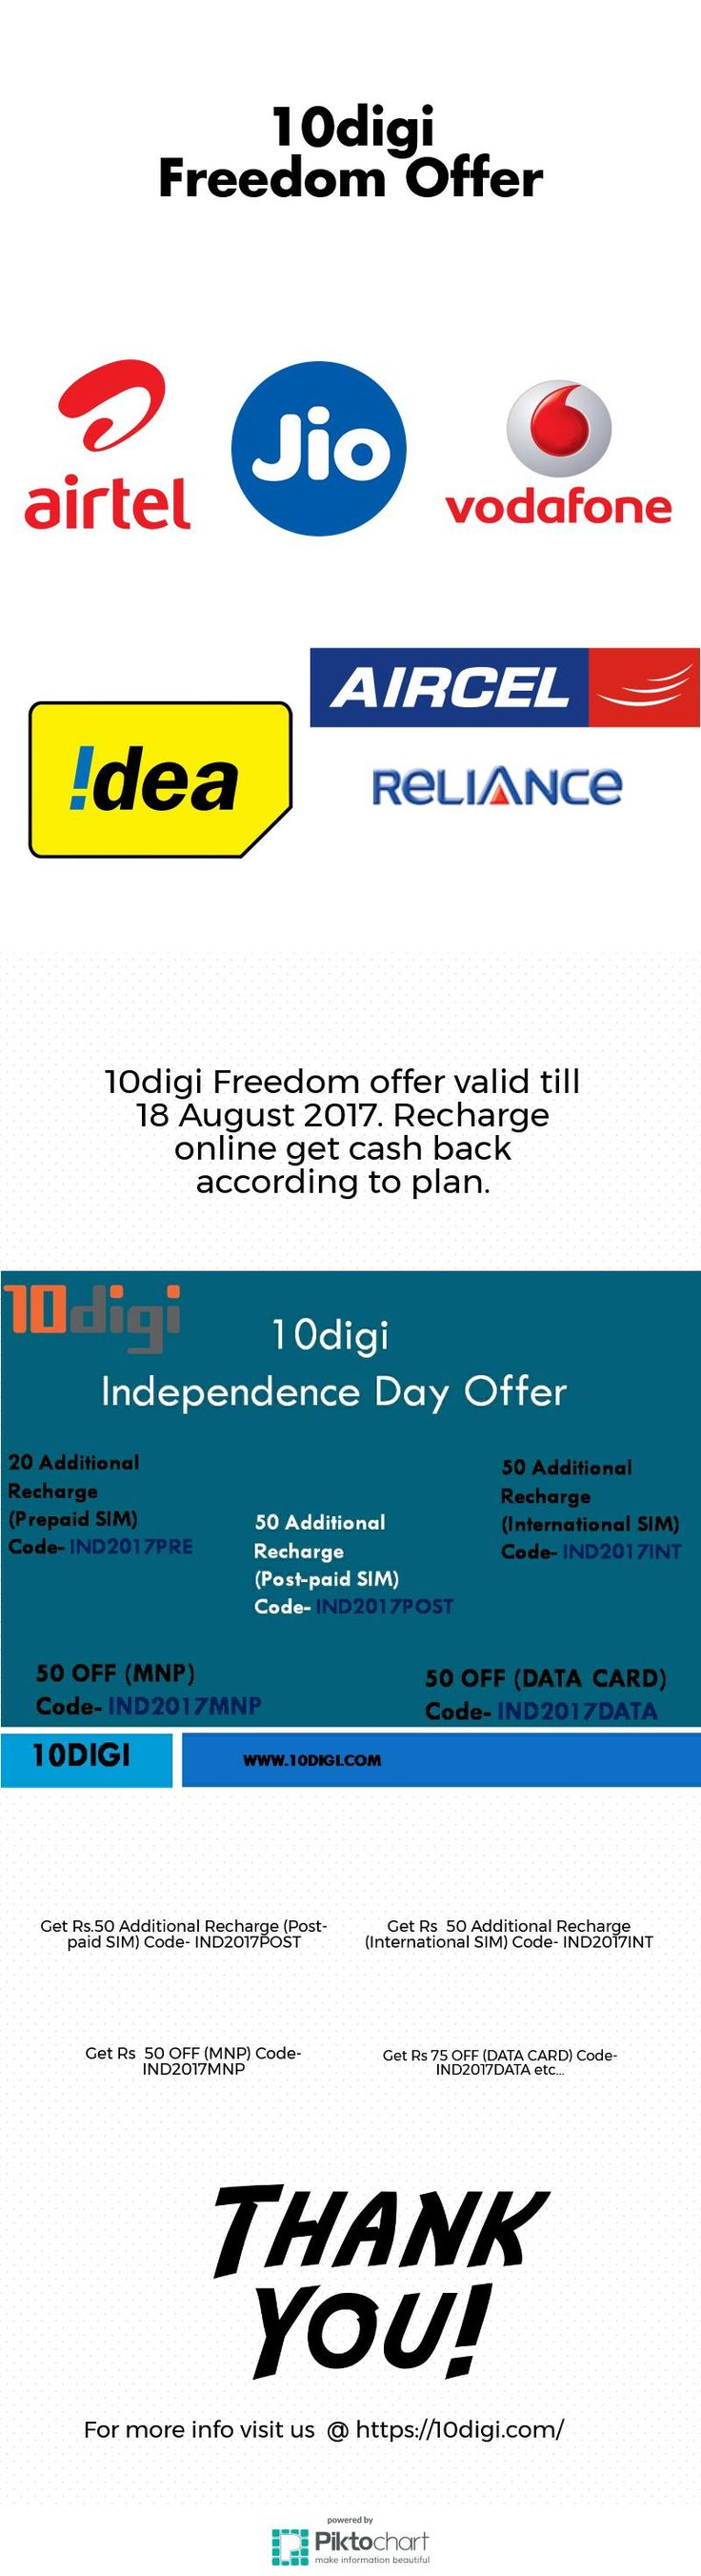 10digi offers services like pre-paid and post-paid connections, data cards, recharge, bill plan comparison, even mobile number portability and Tata docomo prepaid sim card. If you are looking for buy jio sim card online, visit our site.